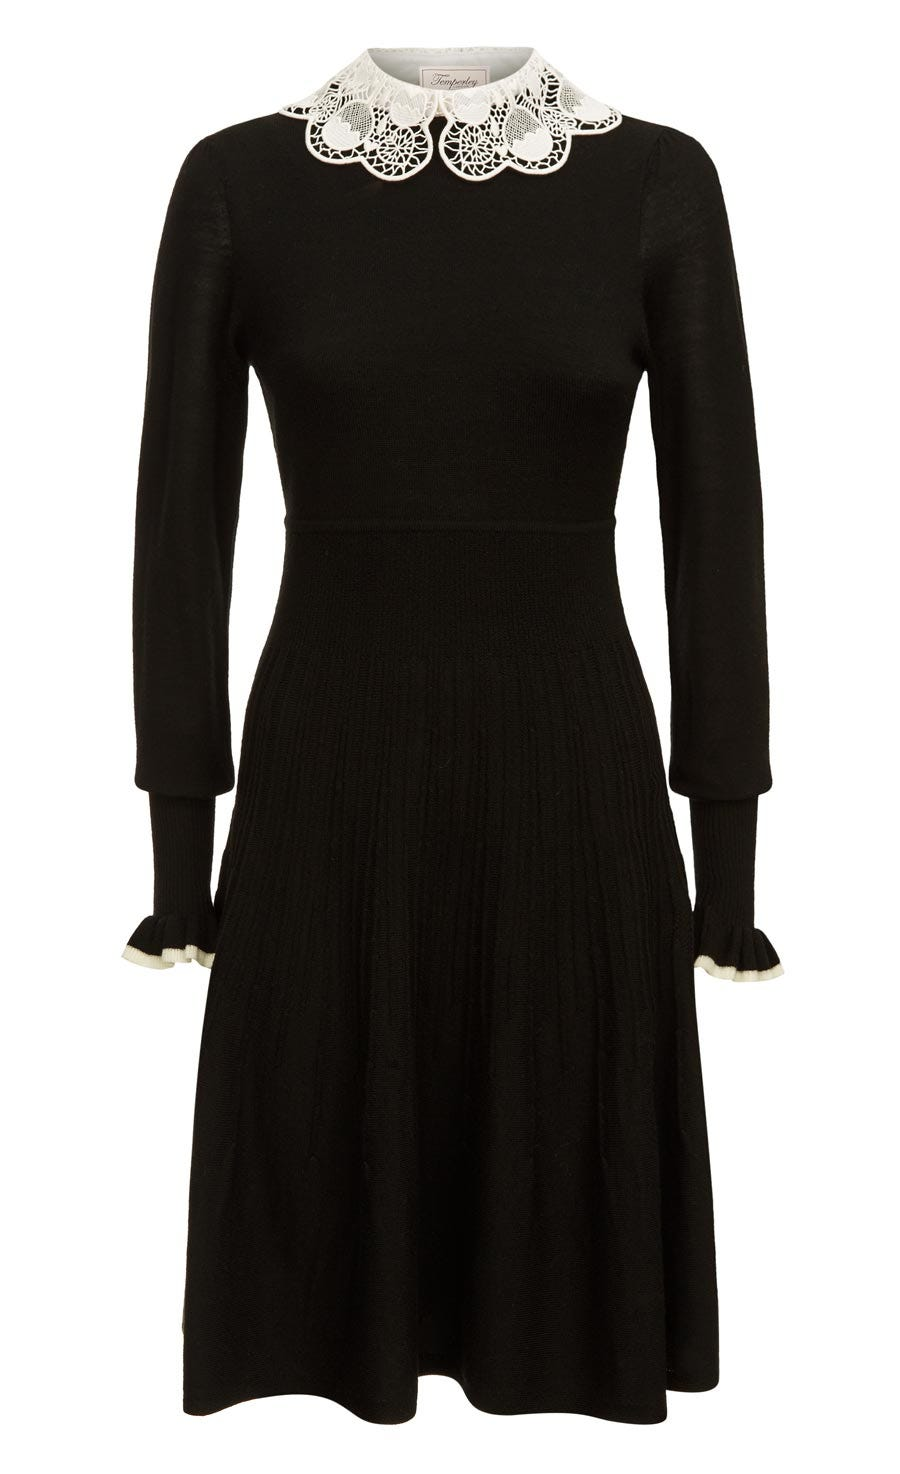 Bliss Sleeved Dress, Black